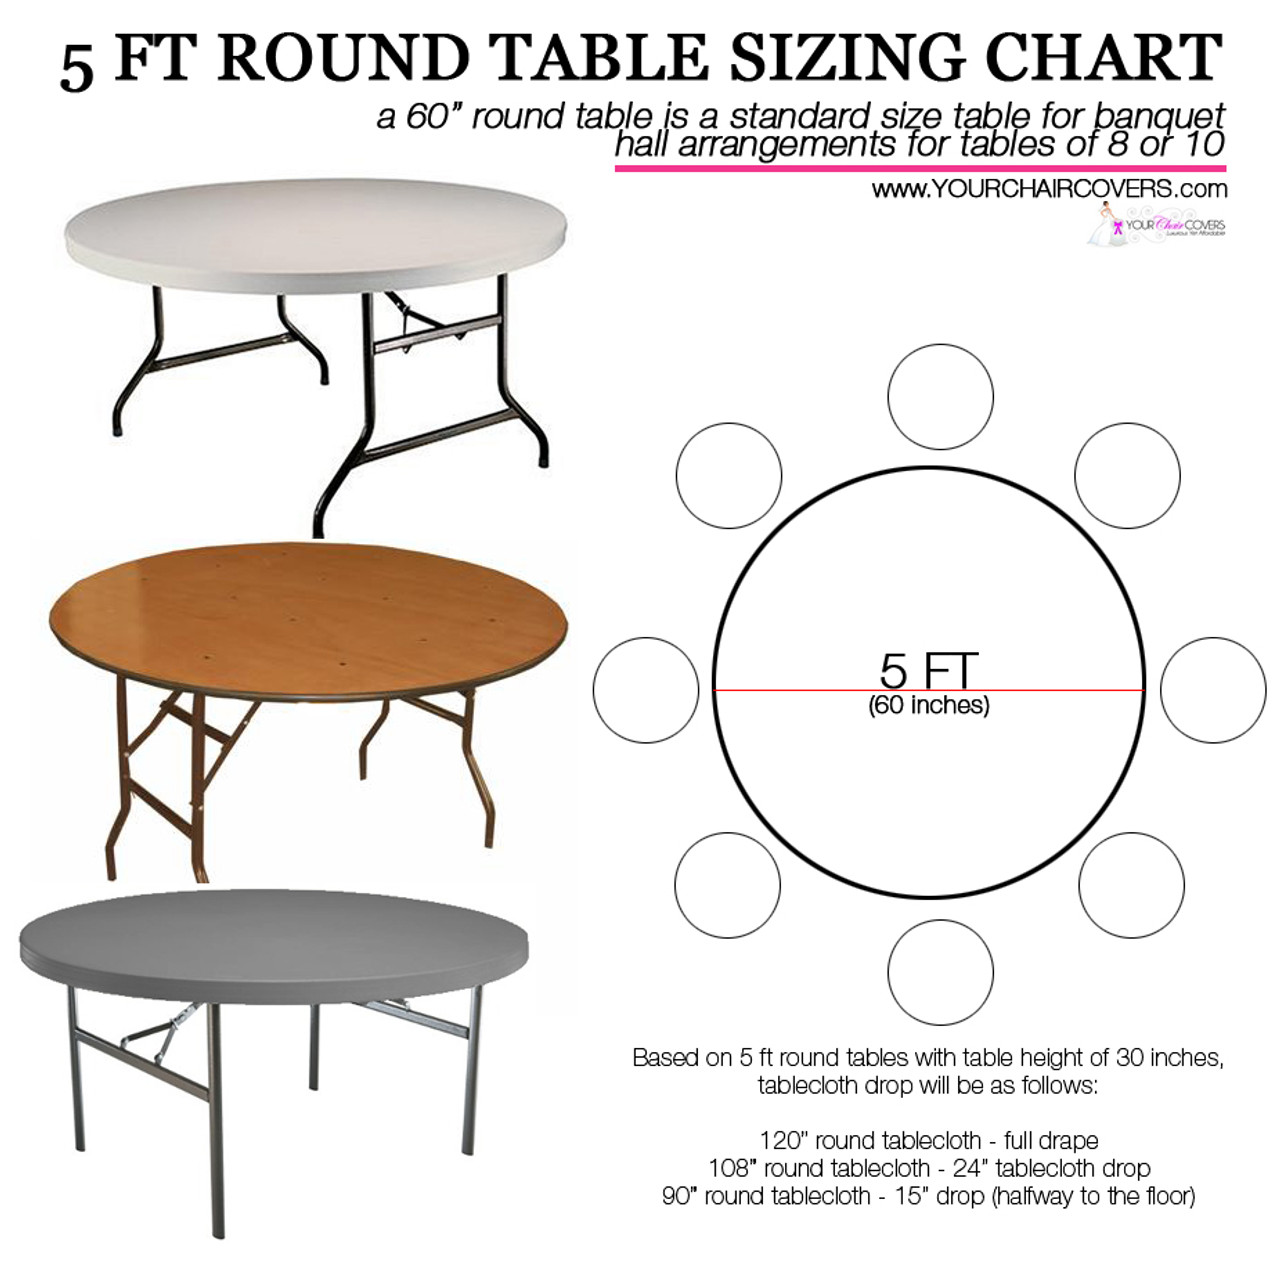 120 Inch Round Polyester Tablecloths White; How To Buy Tablecloths For 5 Ft  Round Tables? Use This Tablecloth Sizing Guide,